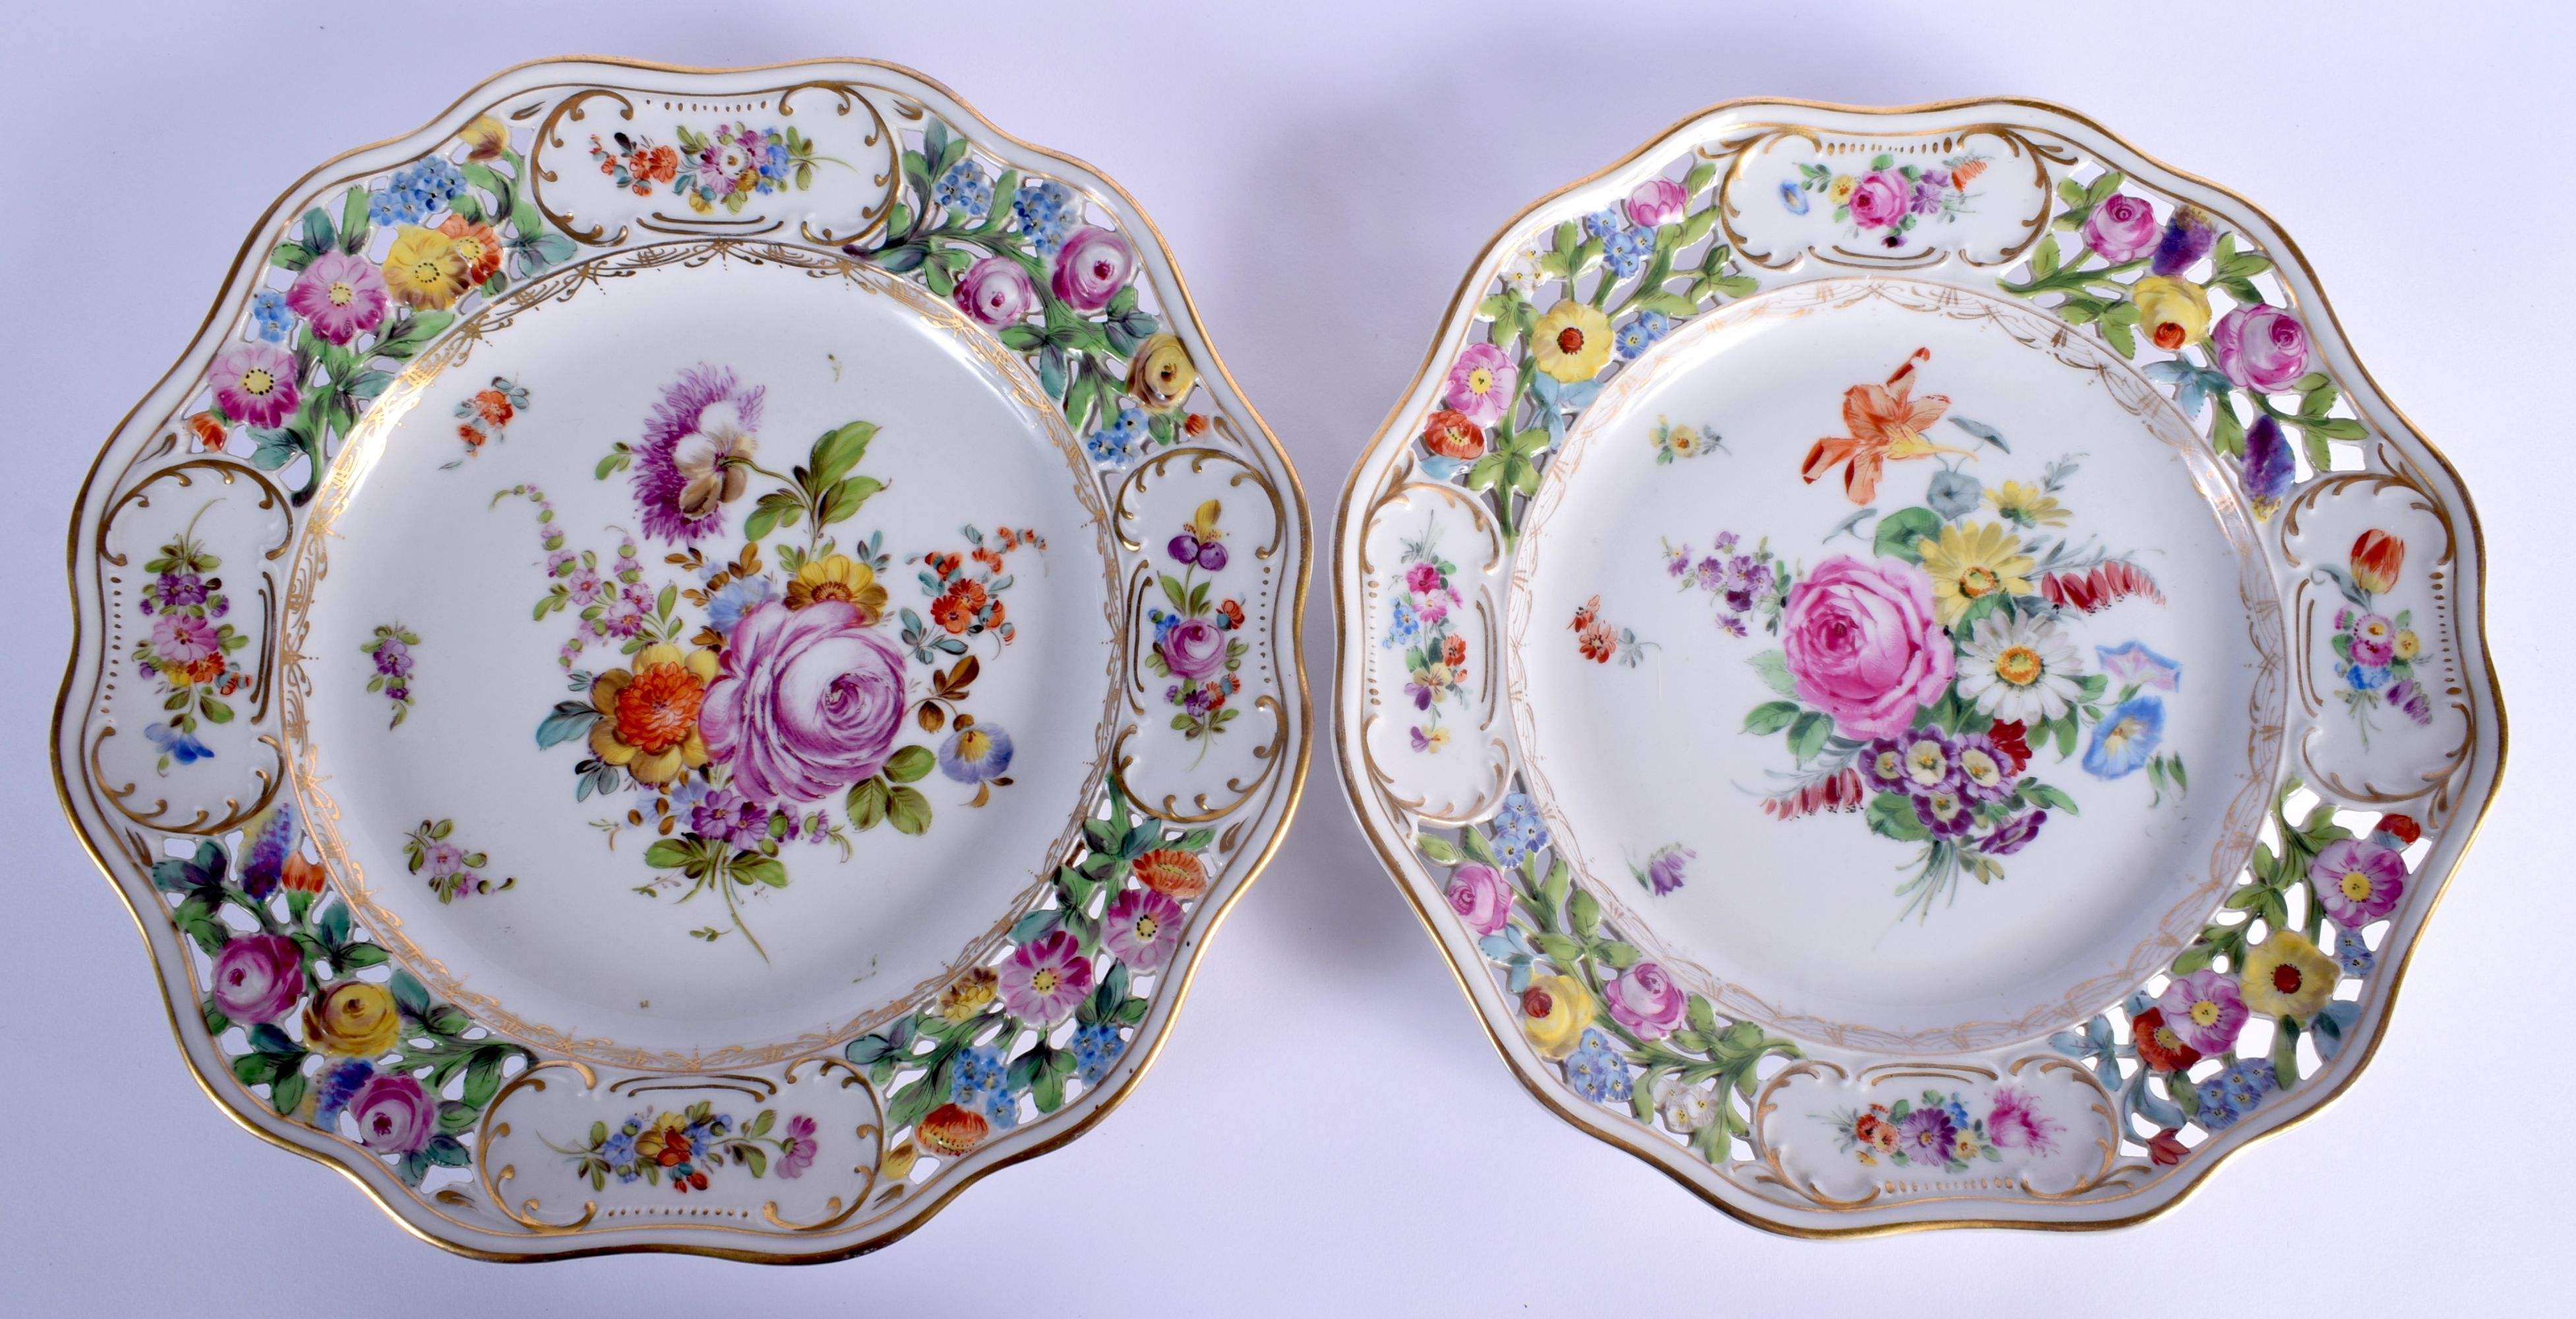 A PAIR OF EARLY 20TH CENTURY DRESDEN RETICULATED PORCELAIN PLATES painted with flowers. 26 cm wide.